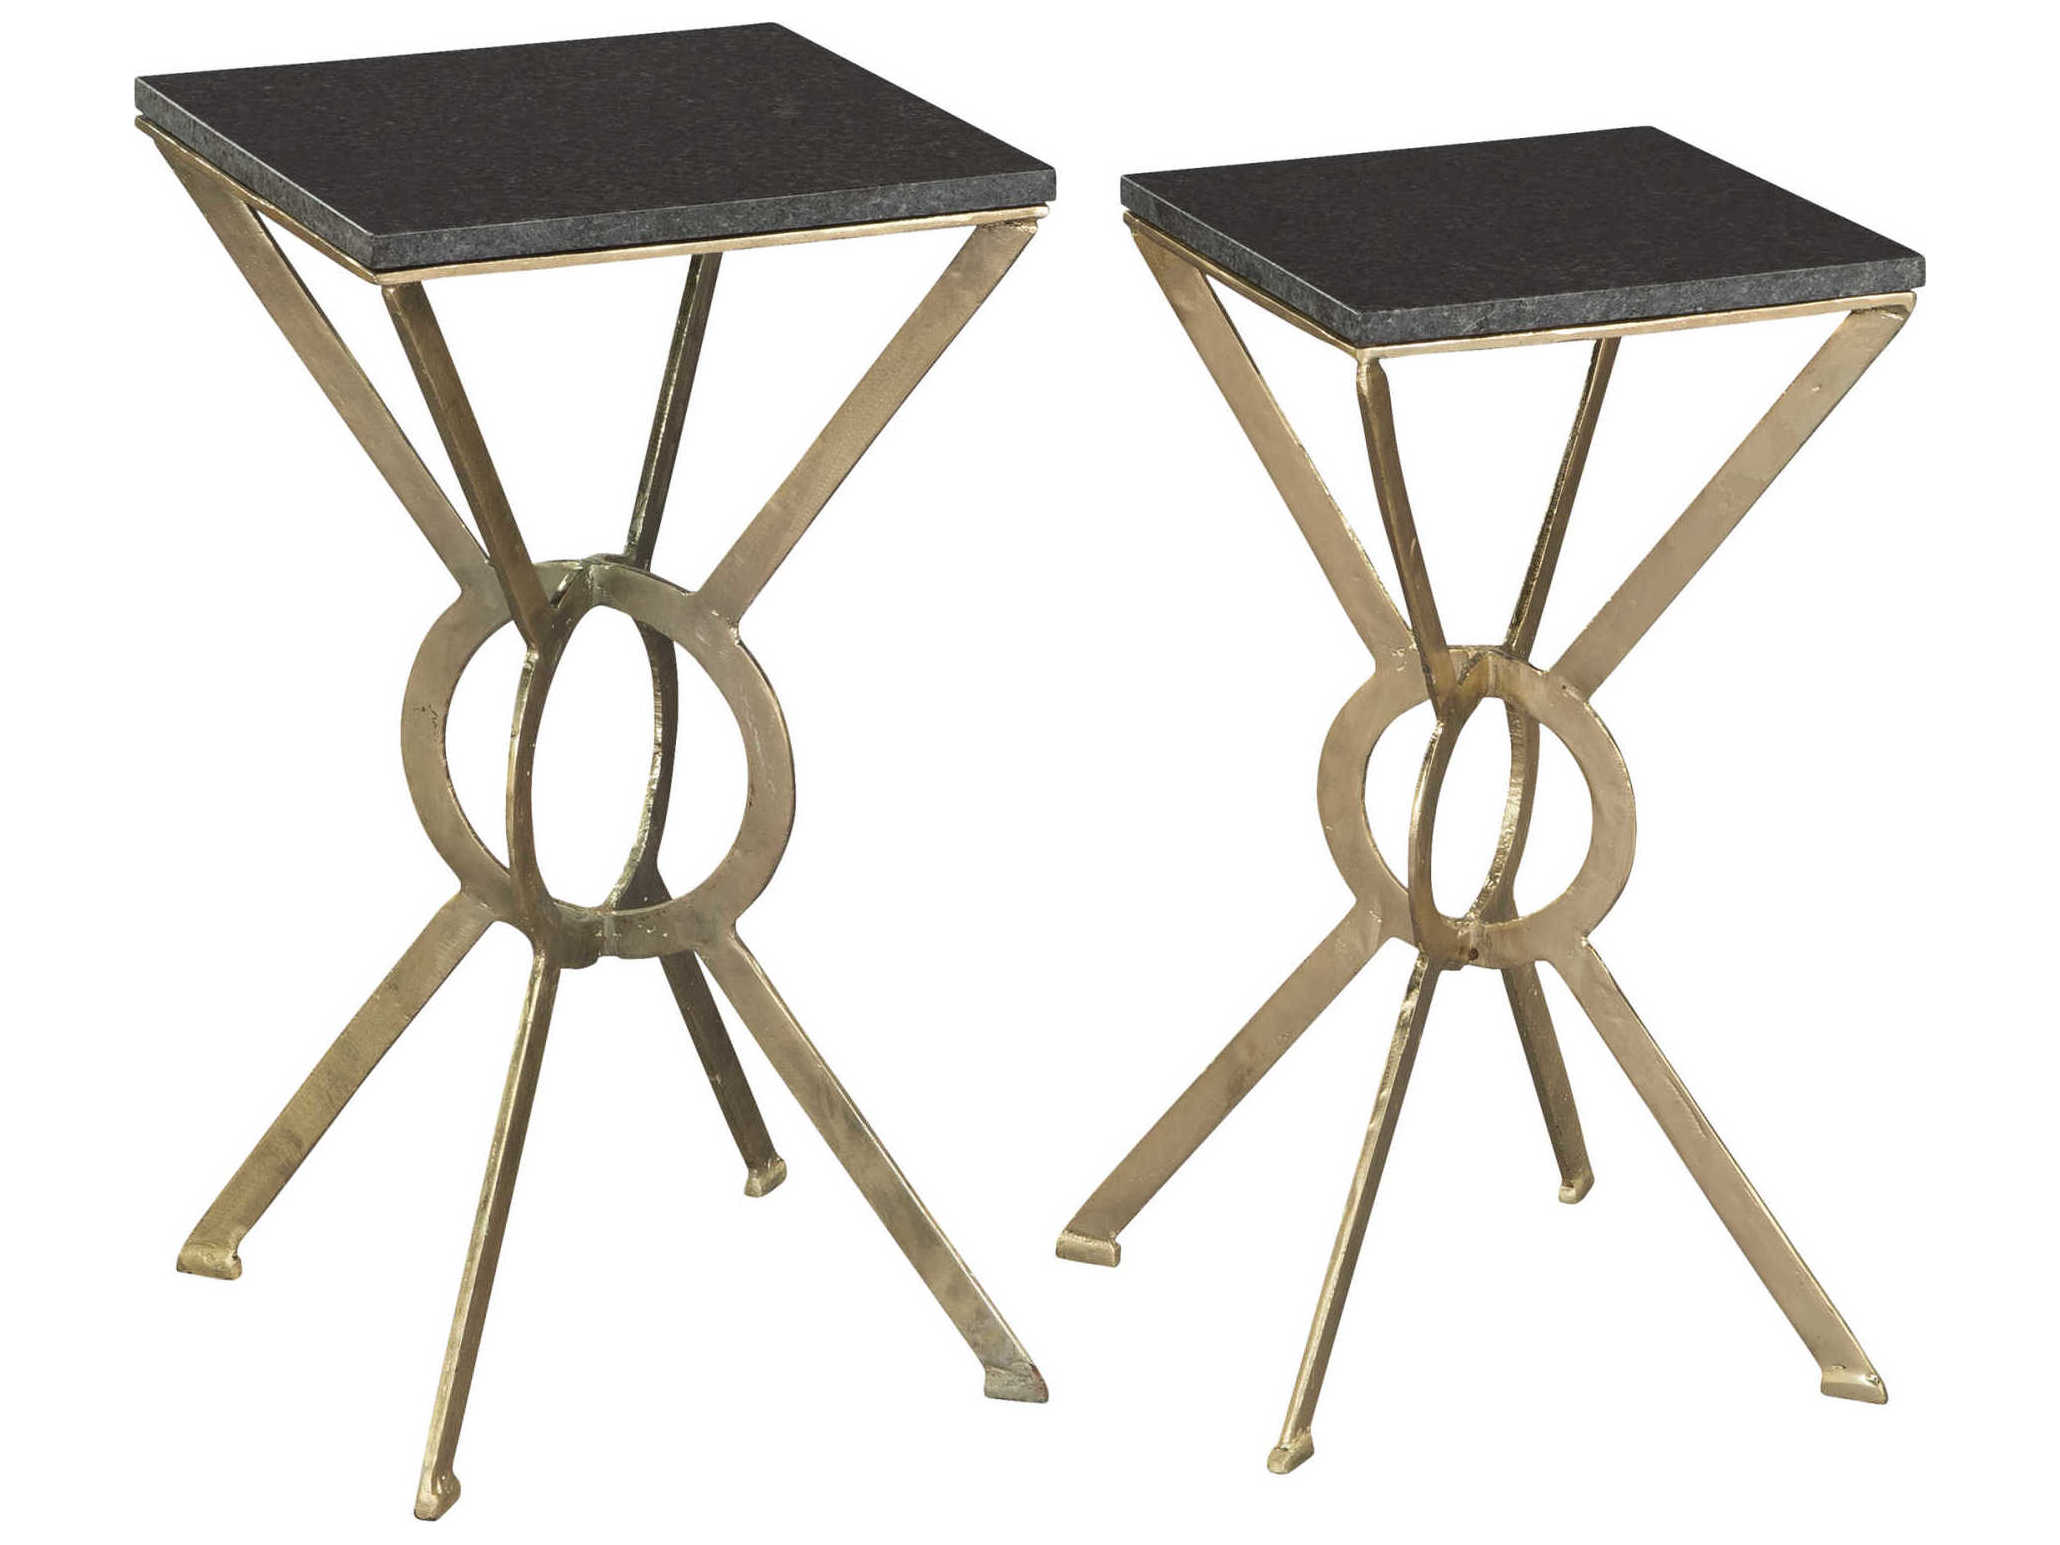 Hekman Accents Special Reserve 13 Wide Square End Table Hk27930